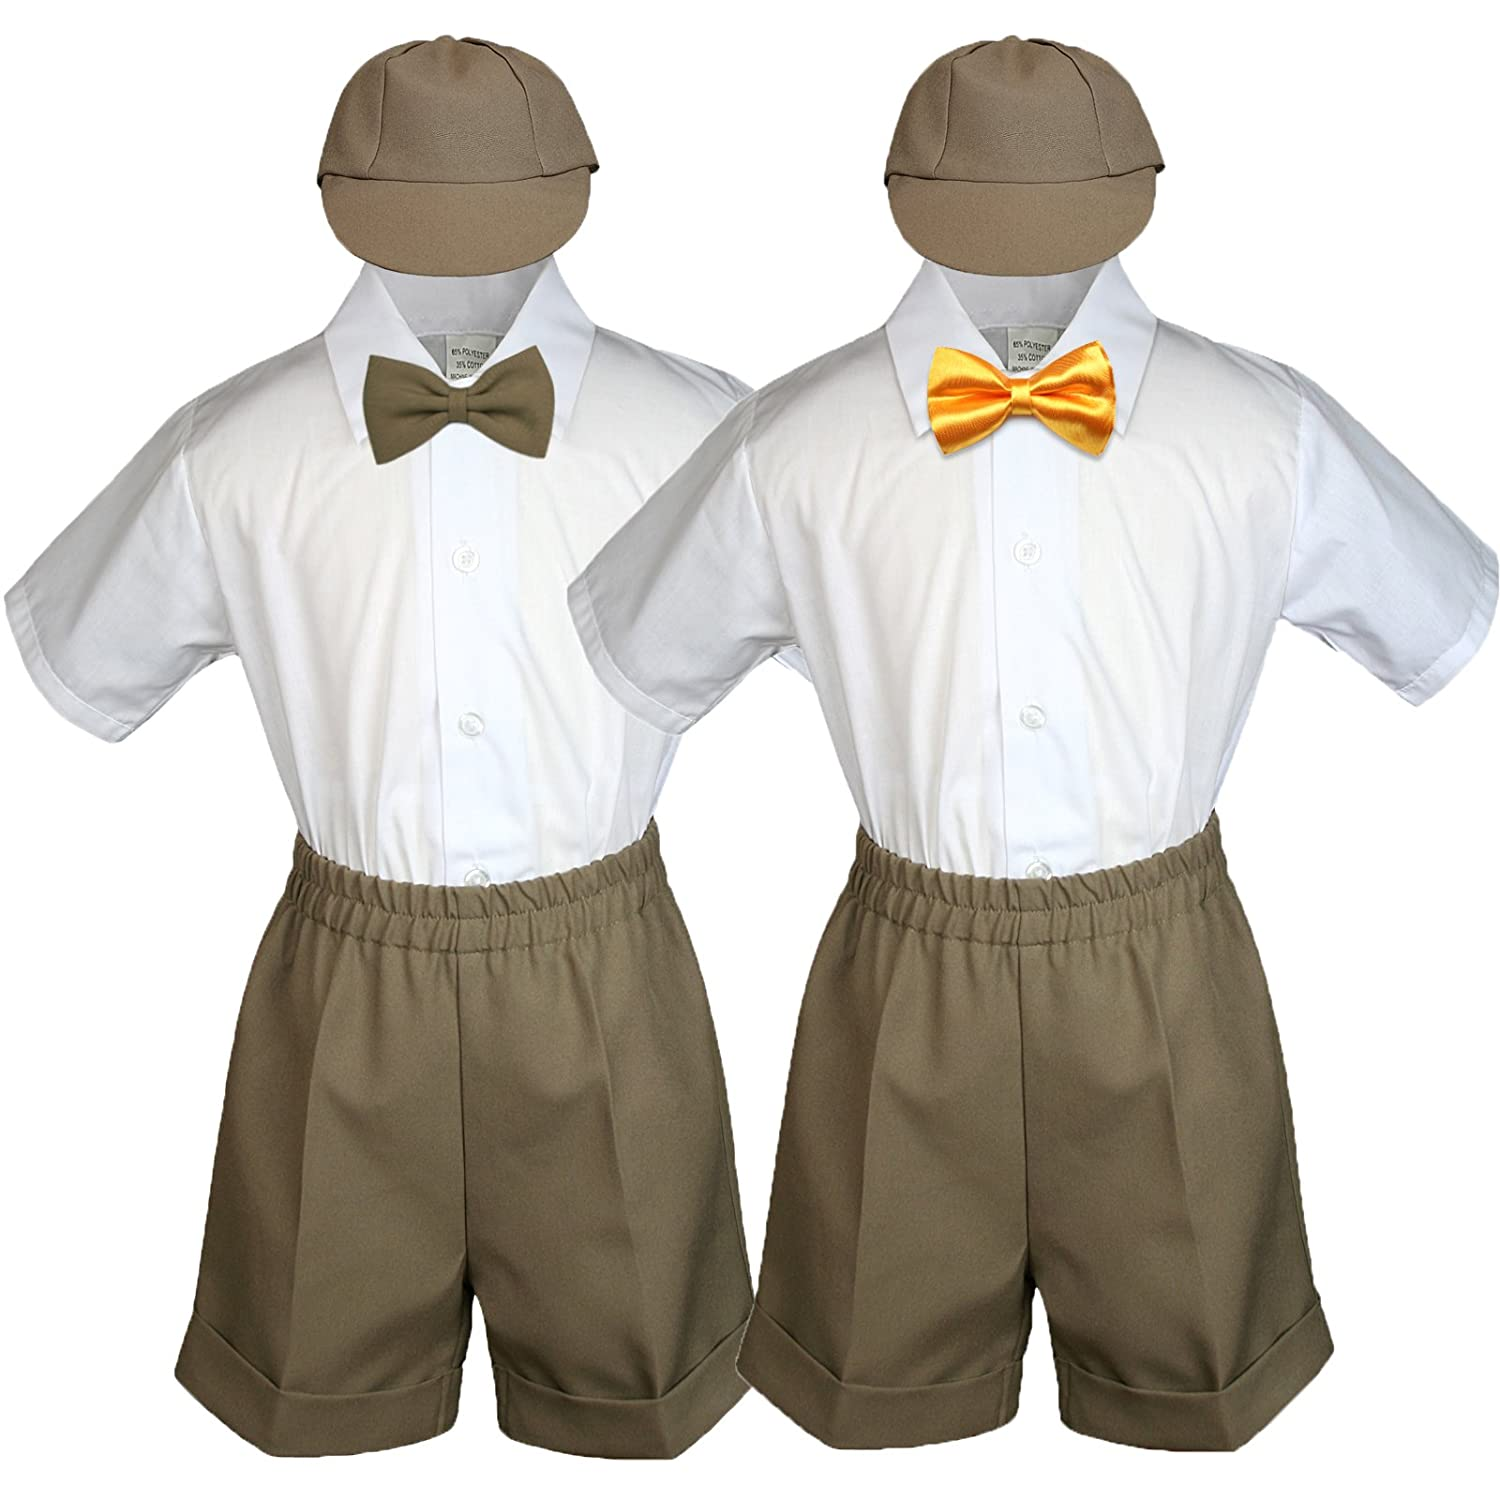 Baby Toddler Boy Kid Wedding Suit Dark Taupe Shorts Shirt Hat Bow Tie Set Sm-4T